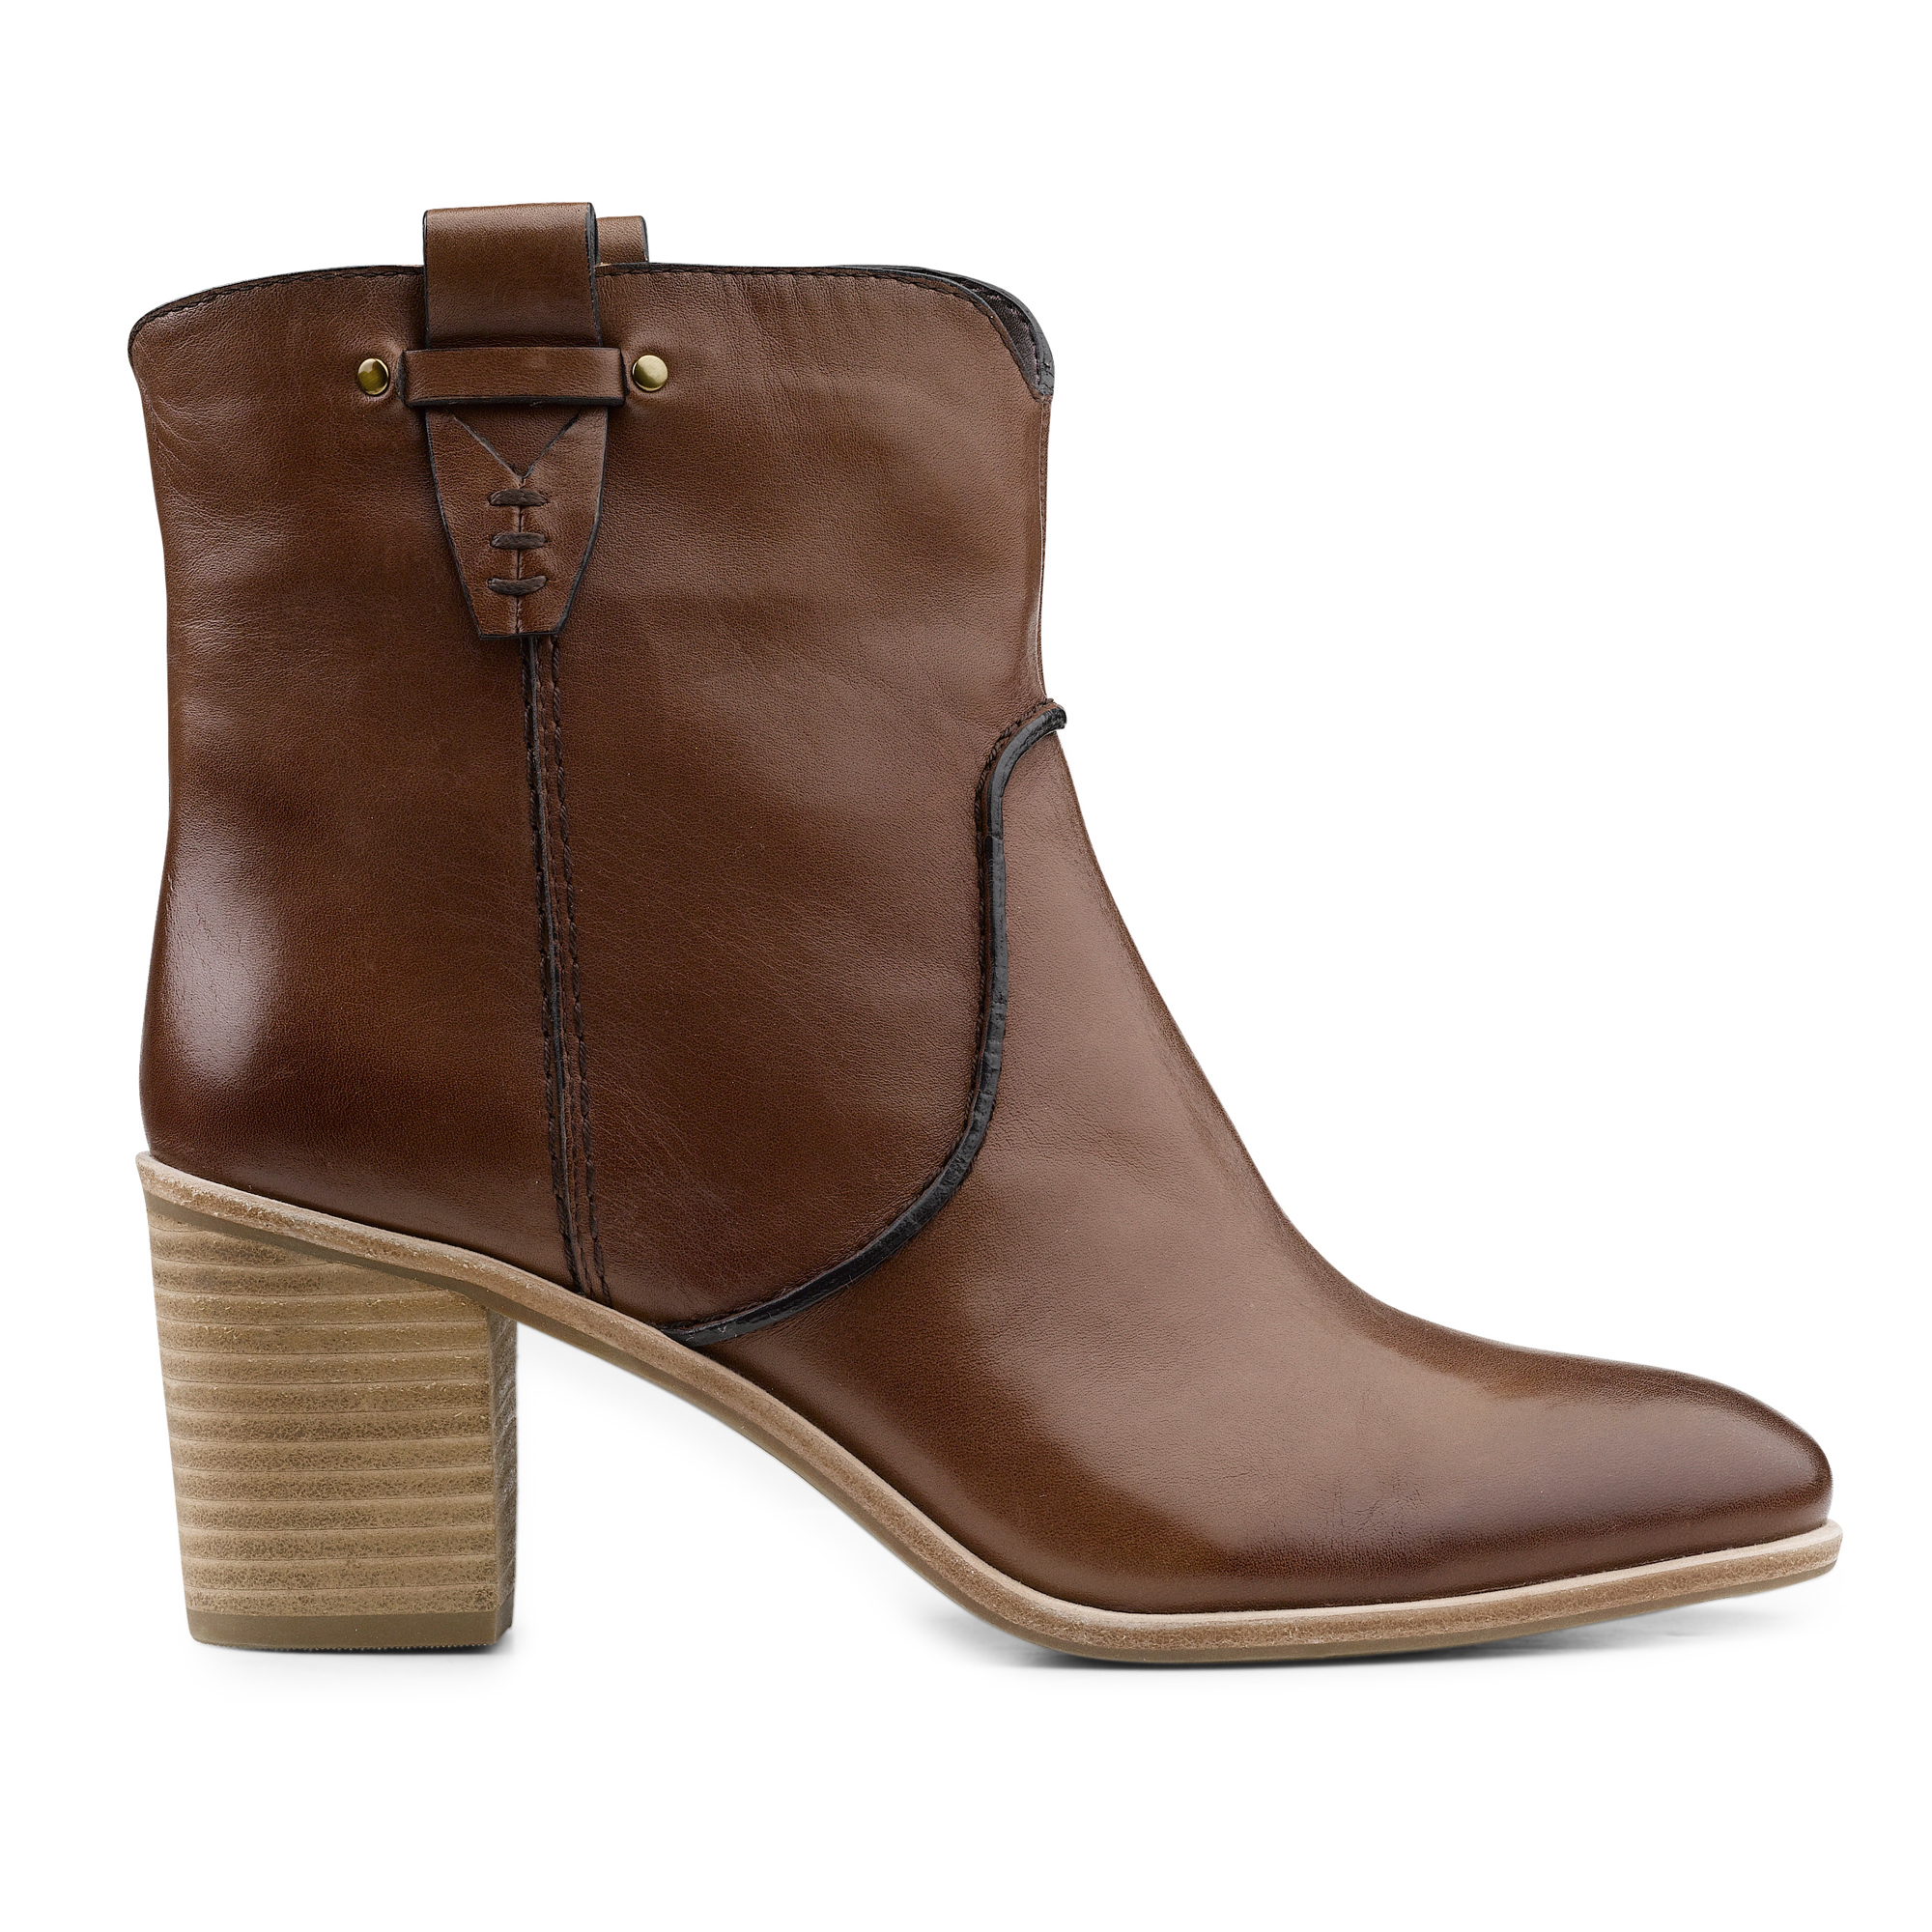 G-H-Bass-amp-Co-Womens-Sophia-Genuine-Leather-Slip-on-Heeled-Ankle-Bootie